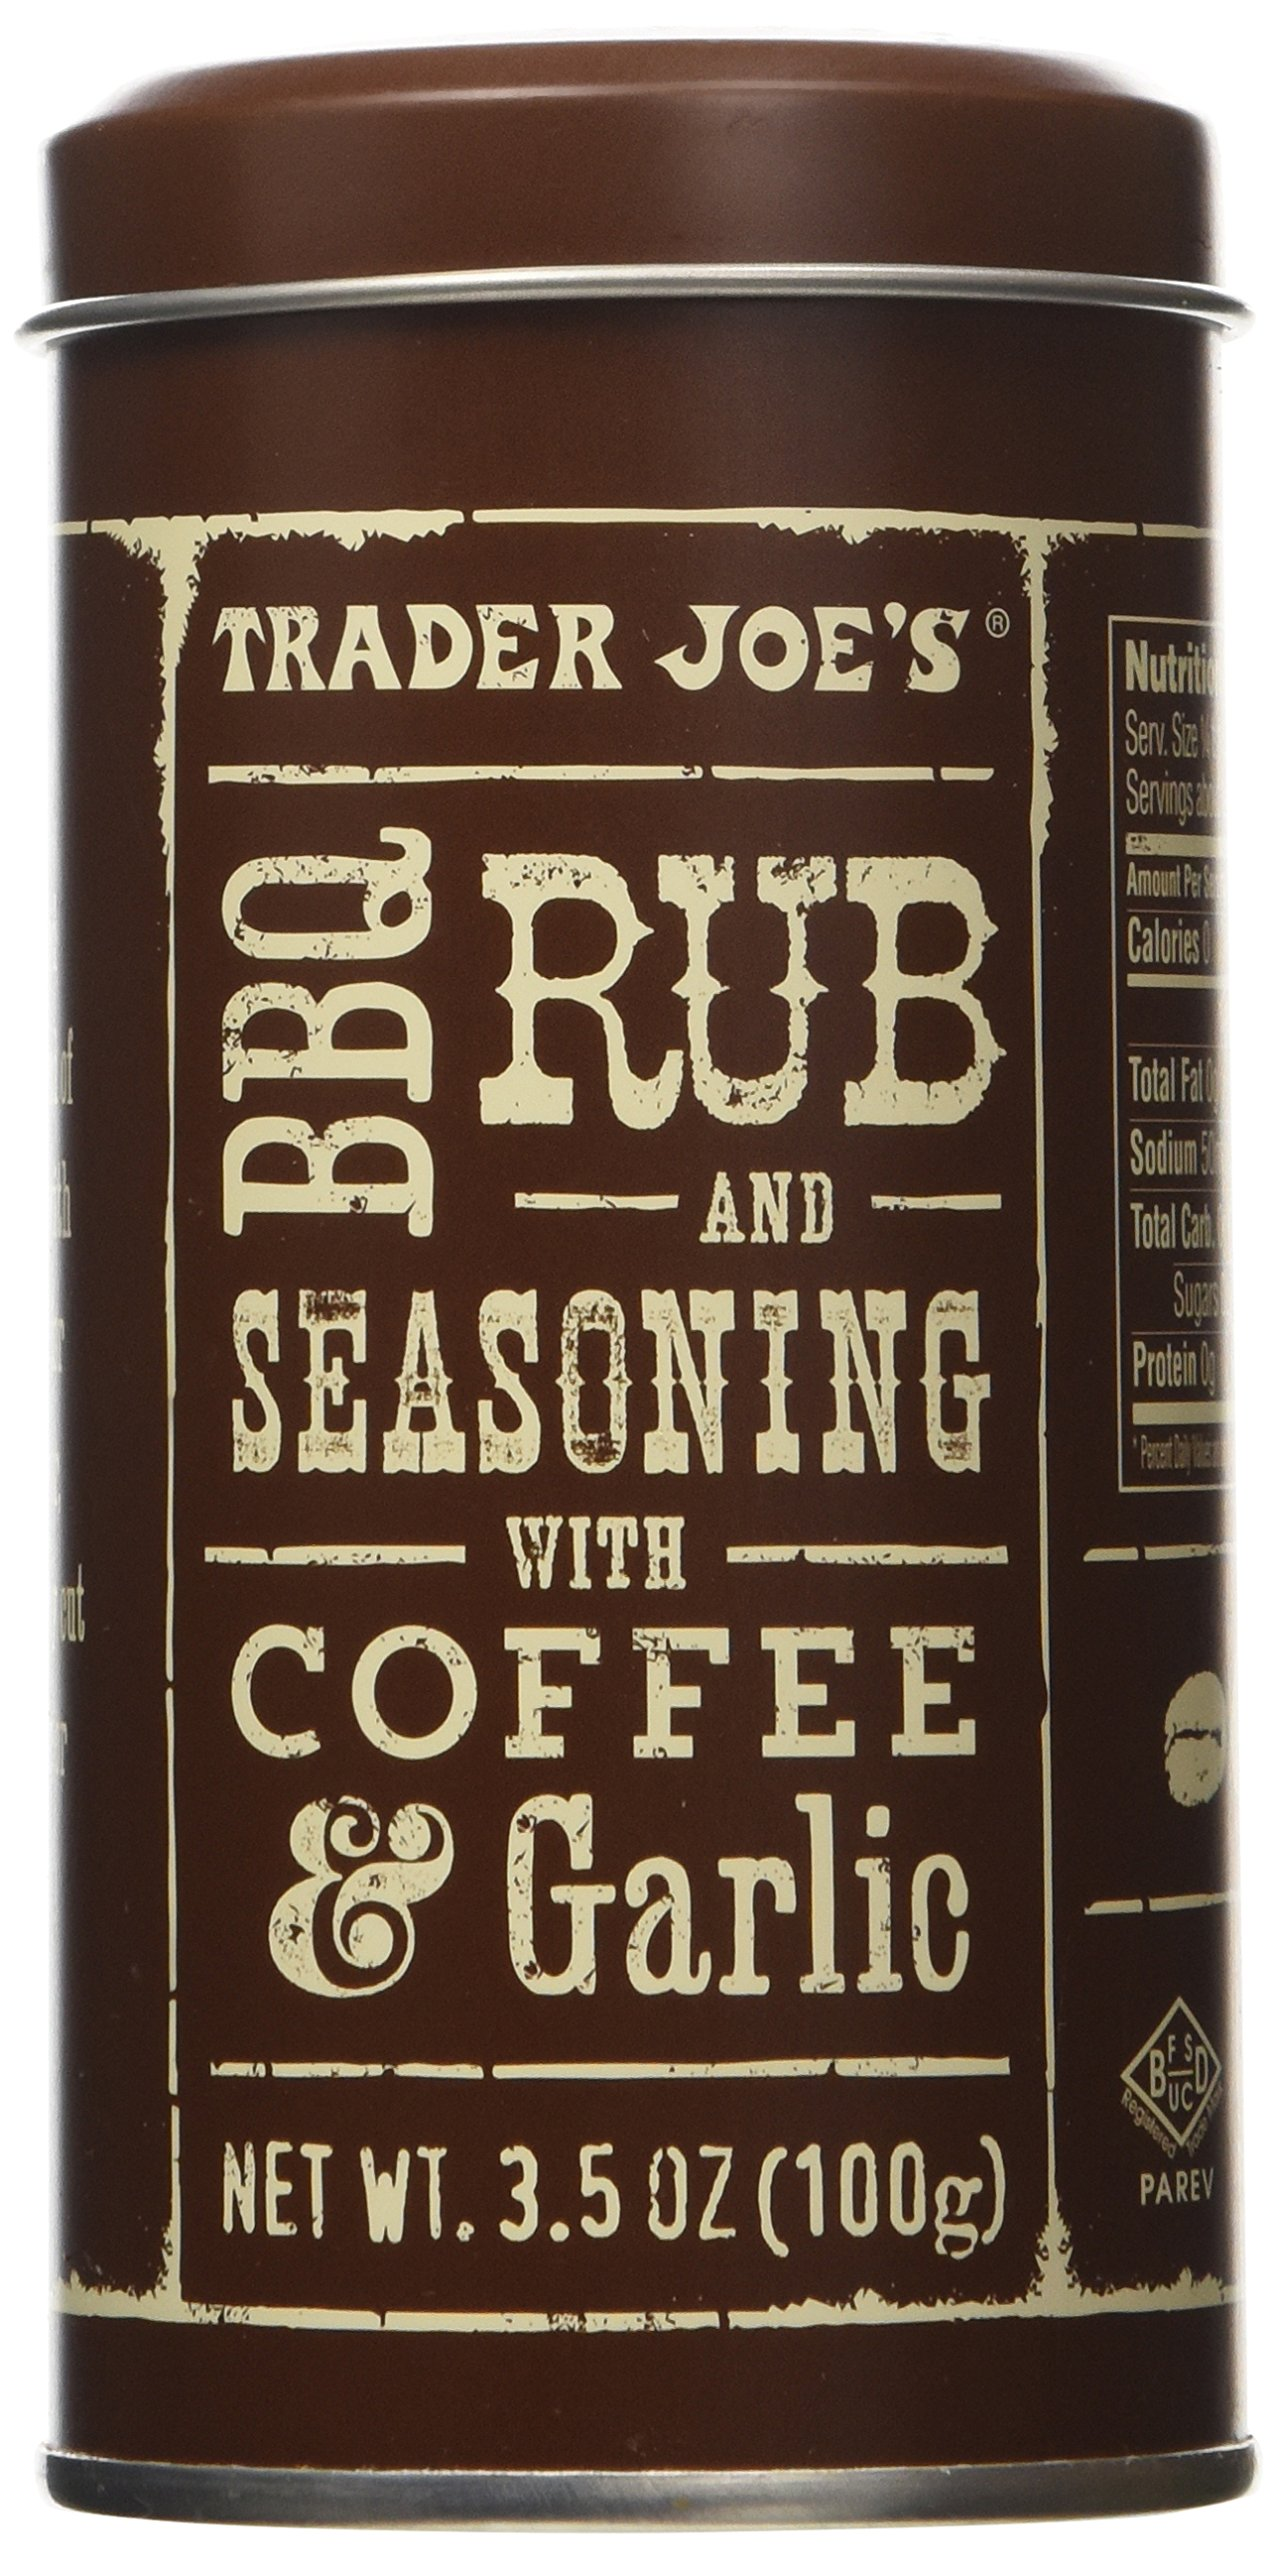 Trader Joe's BBQ Rub and Seasoning with Coffee & Garlic (Pack of 2)